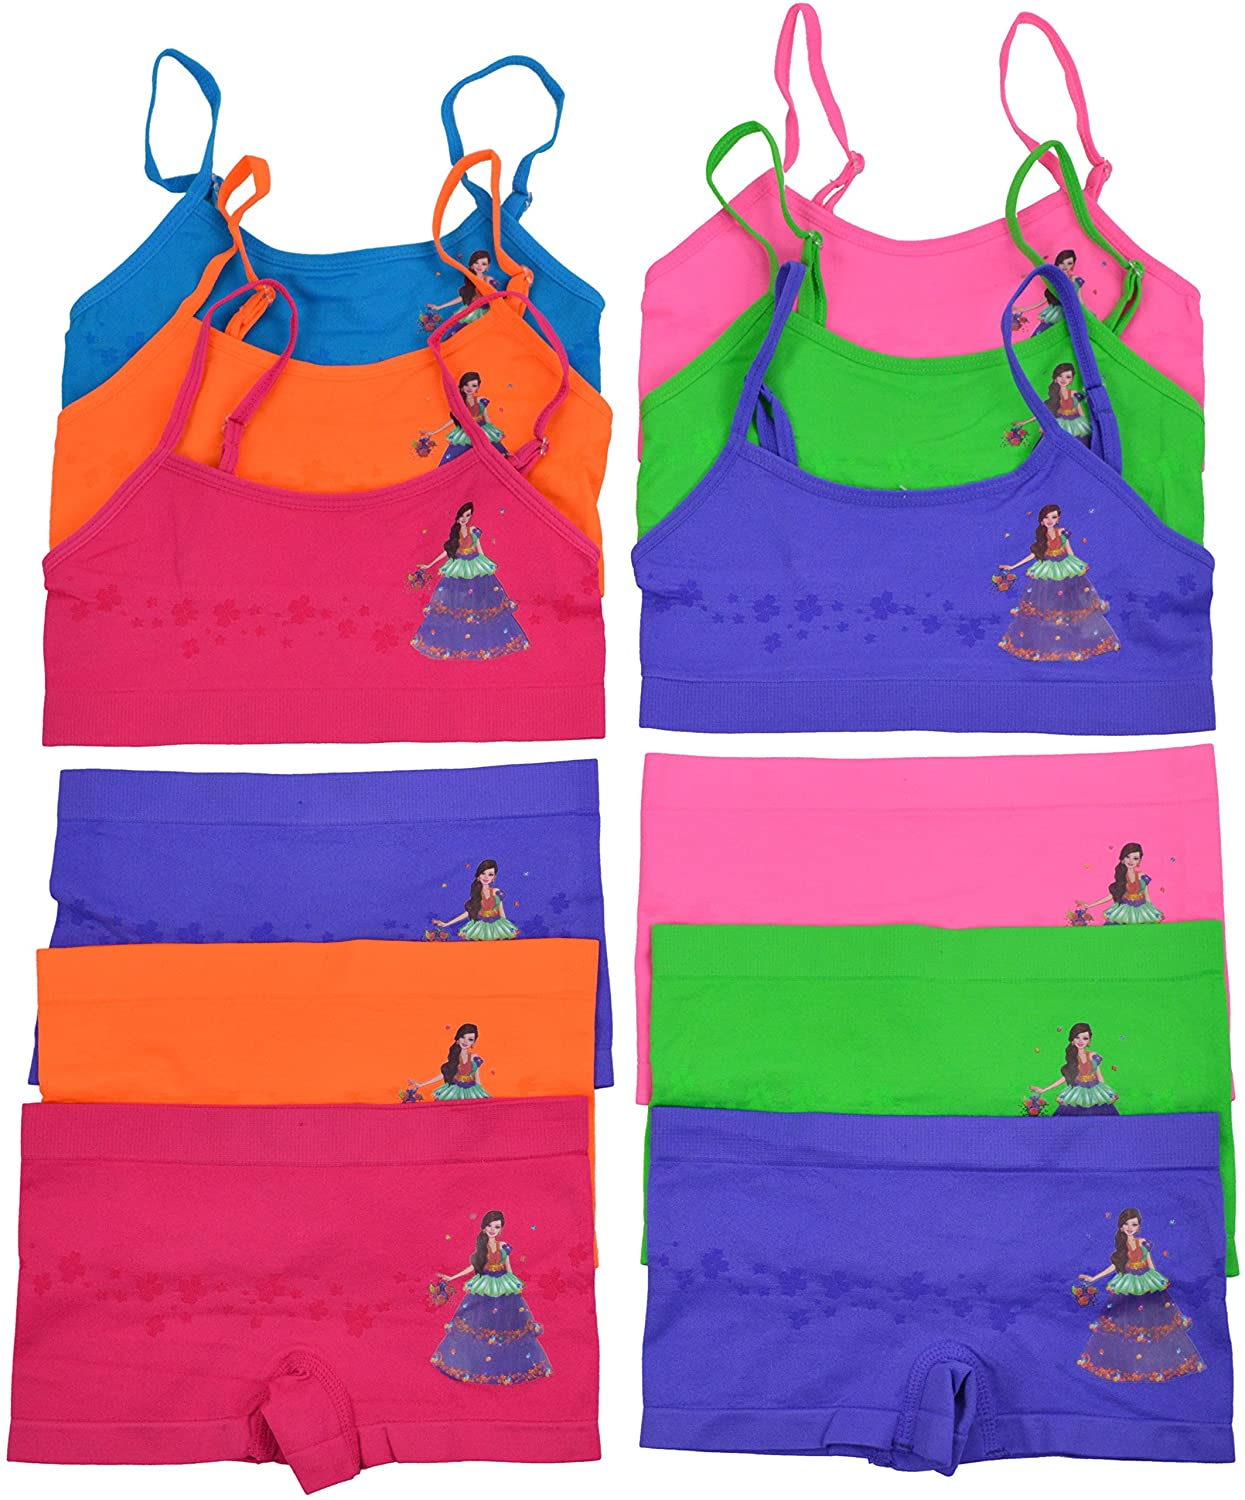 Ages 4-6 3/_/_n68e810/_kfmf/_0p1a9s6i ToBeInStyle Girls Pack of 6 Set of Spaghetti Strap Bras and Boyshorts Bikinis Glitter Dress Small